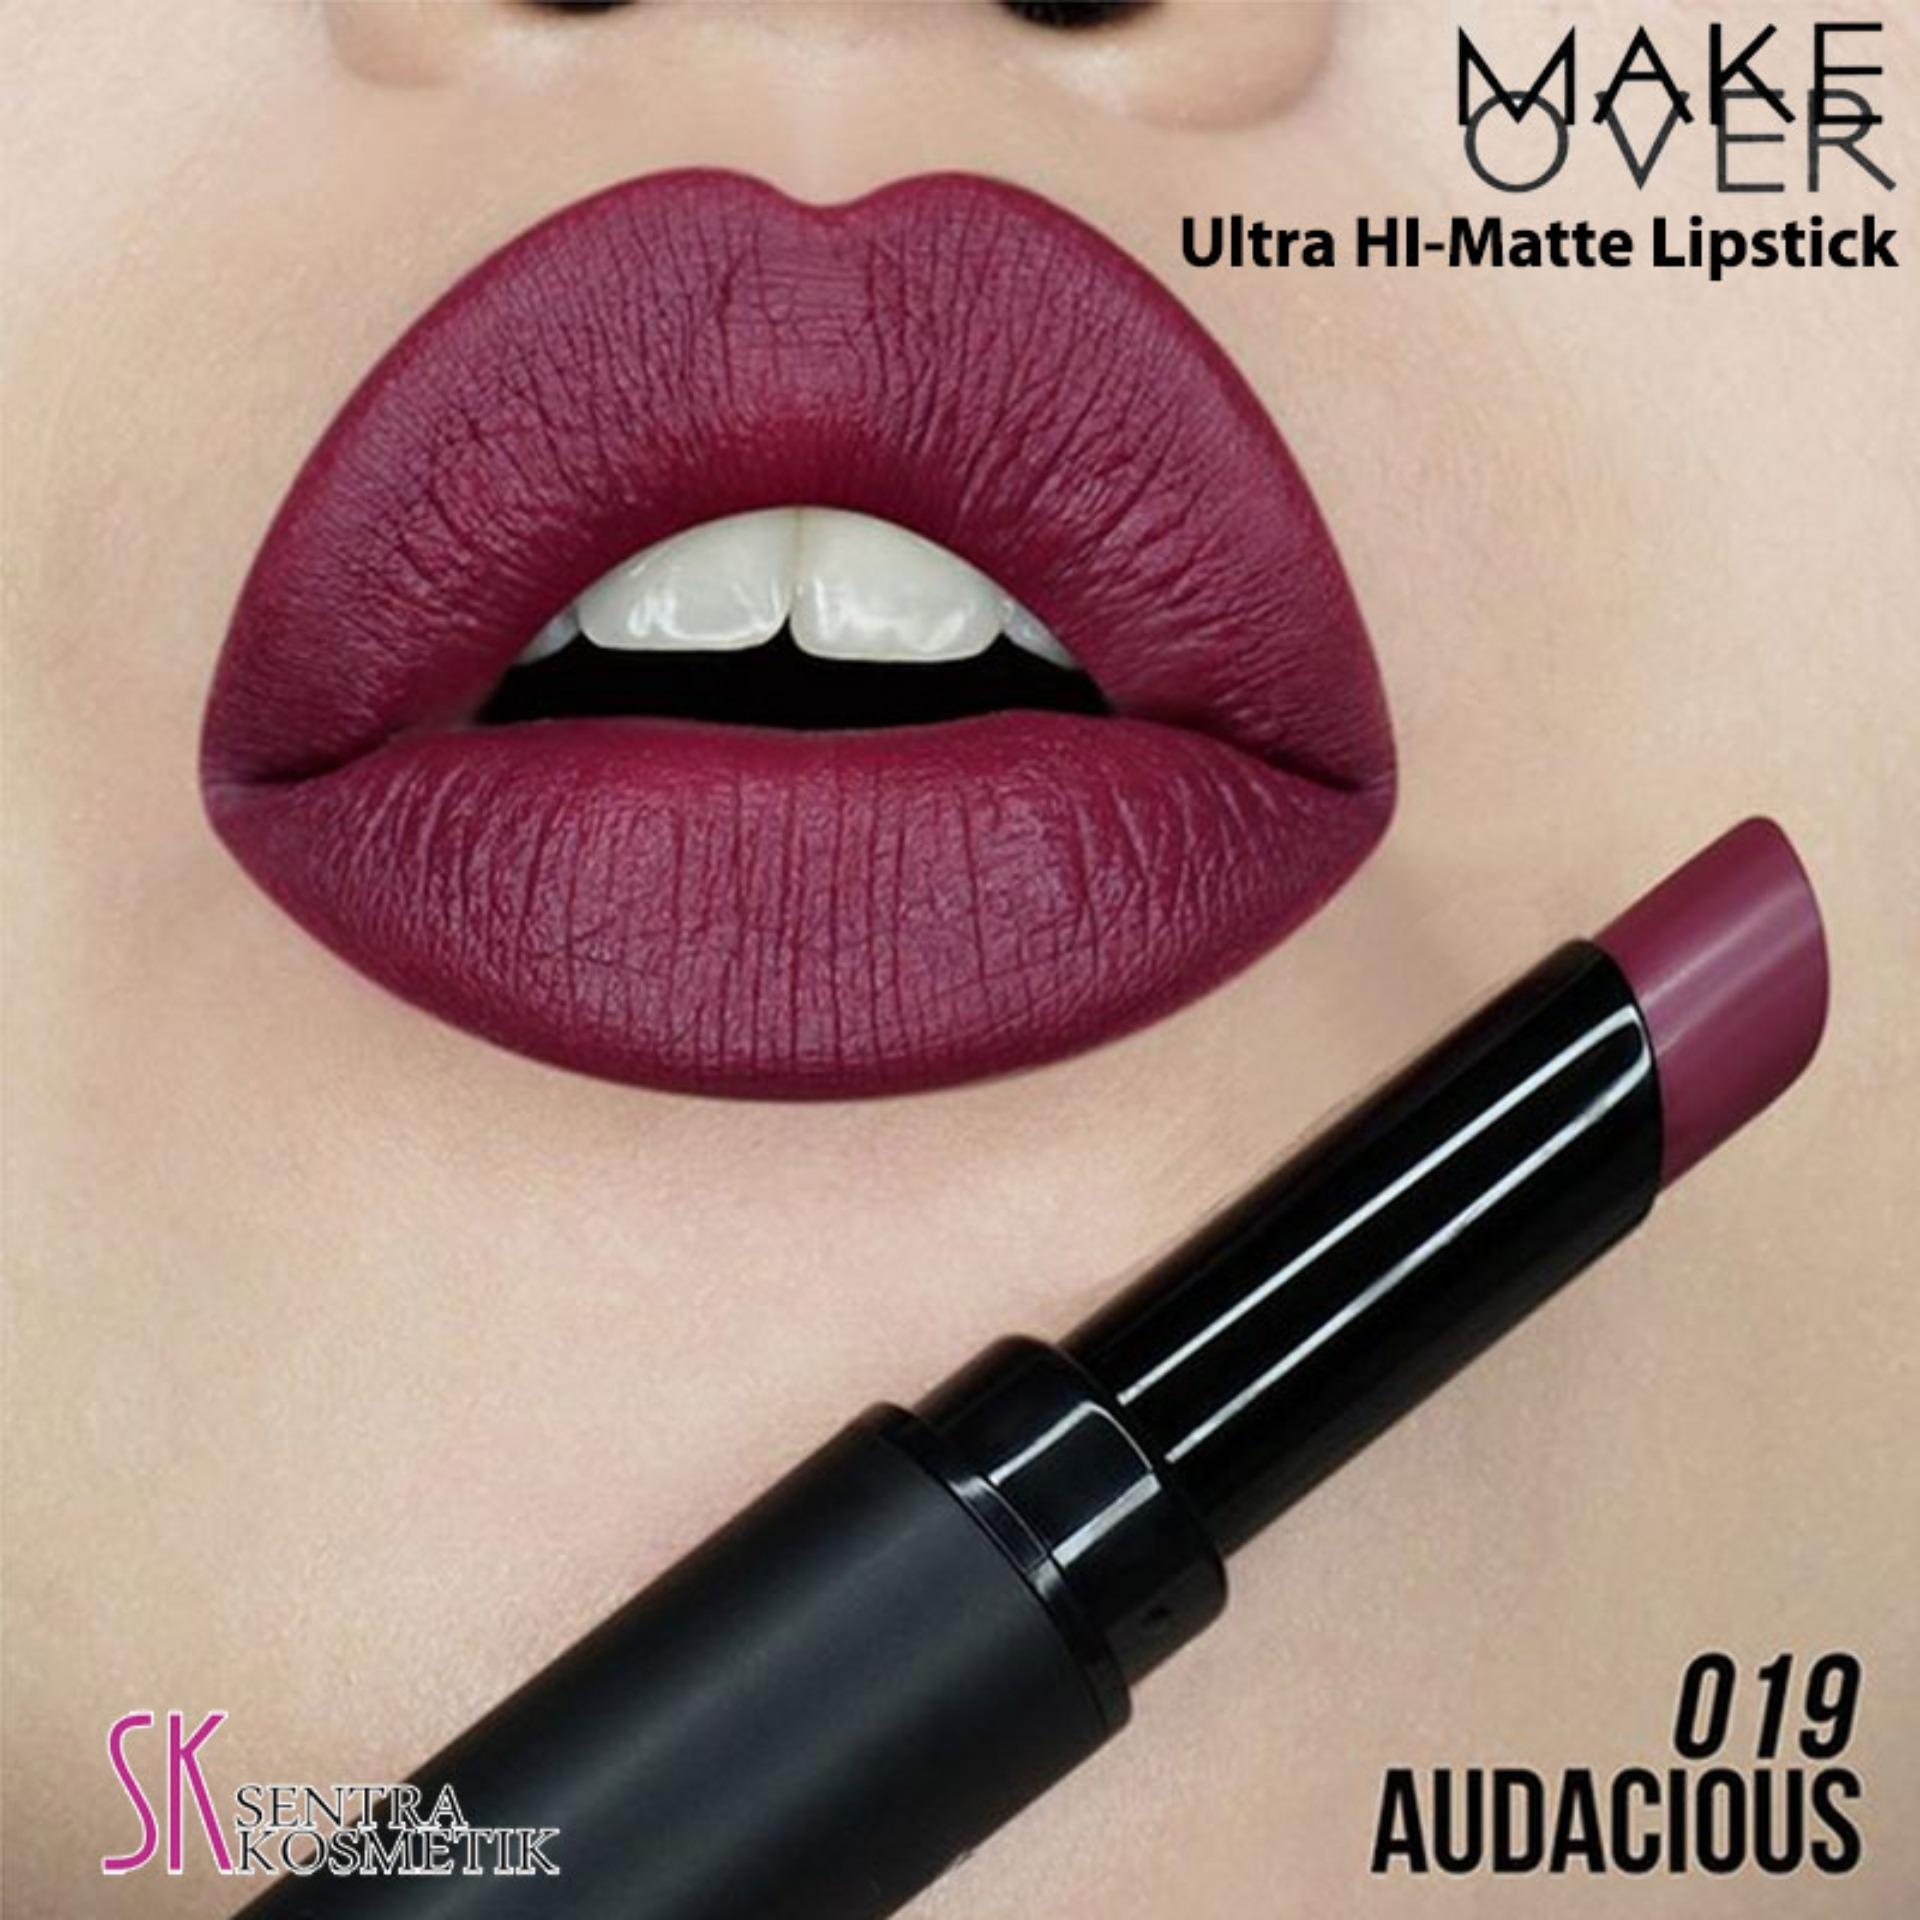 Zoya Cosmetics Ultramatte Lip Sweet Maroons 037 Daftar Harga Avione Moist Lipstick 06 Persian Pink 411116 Jual Maroon By Source Make Over Ultra Hi Matte